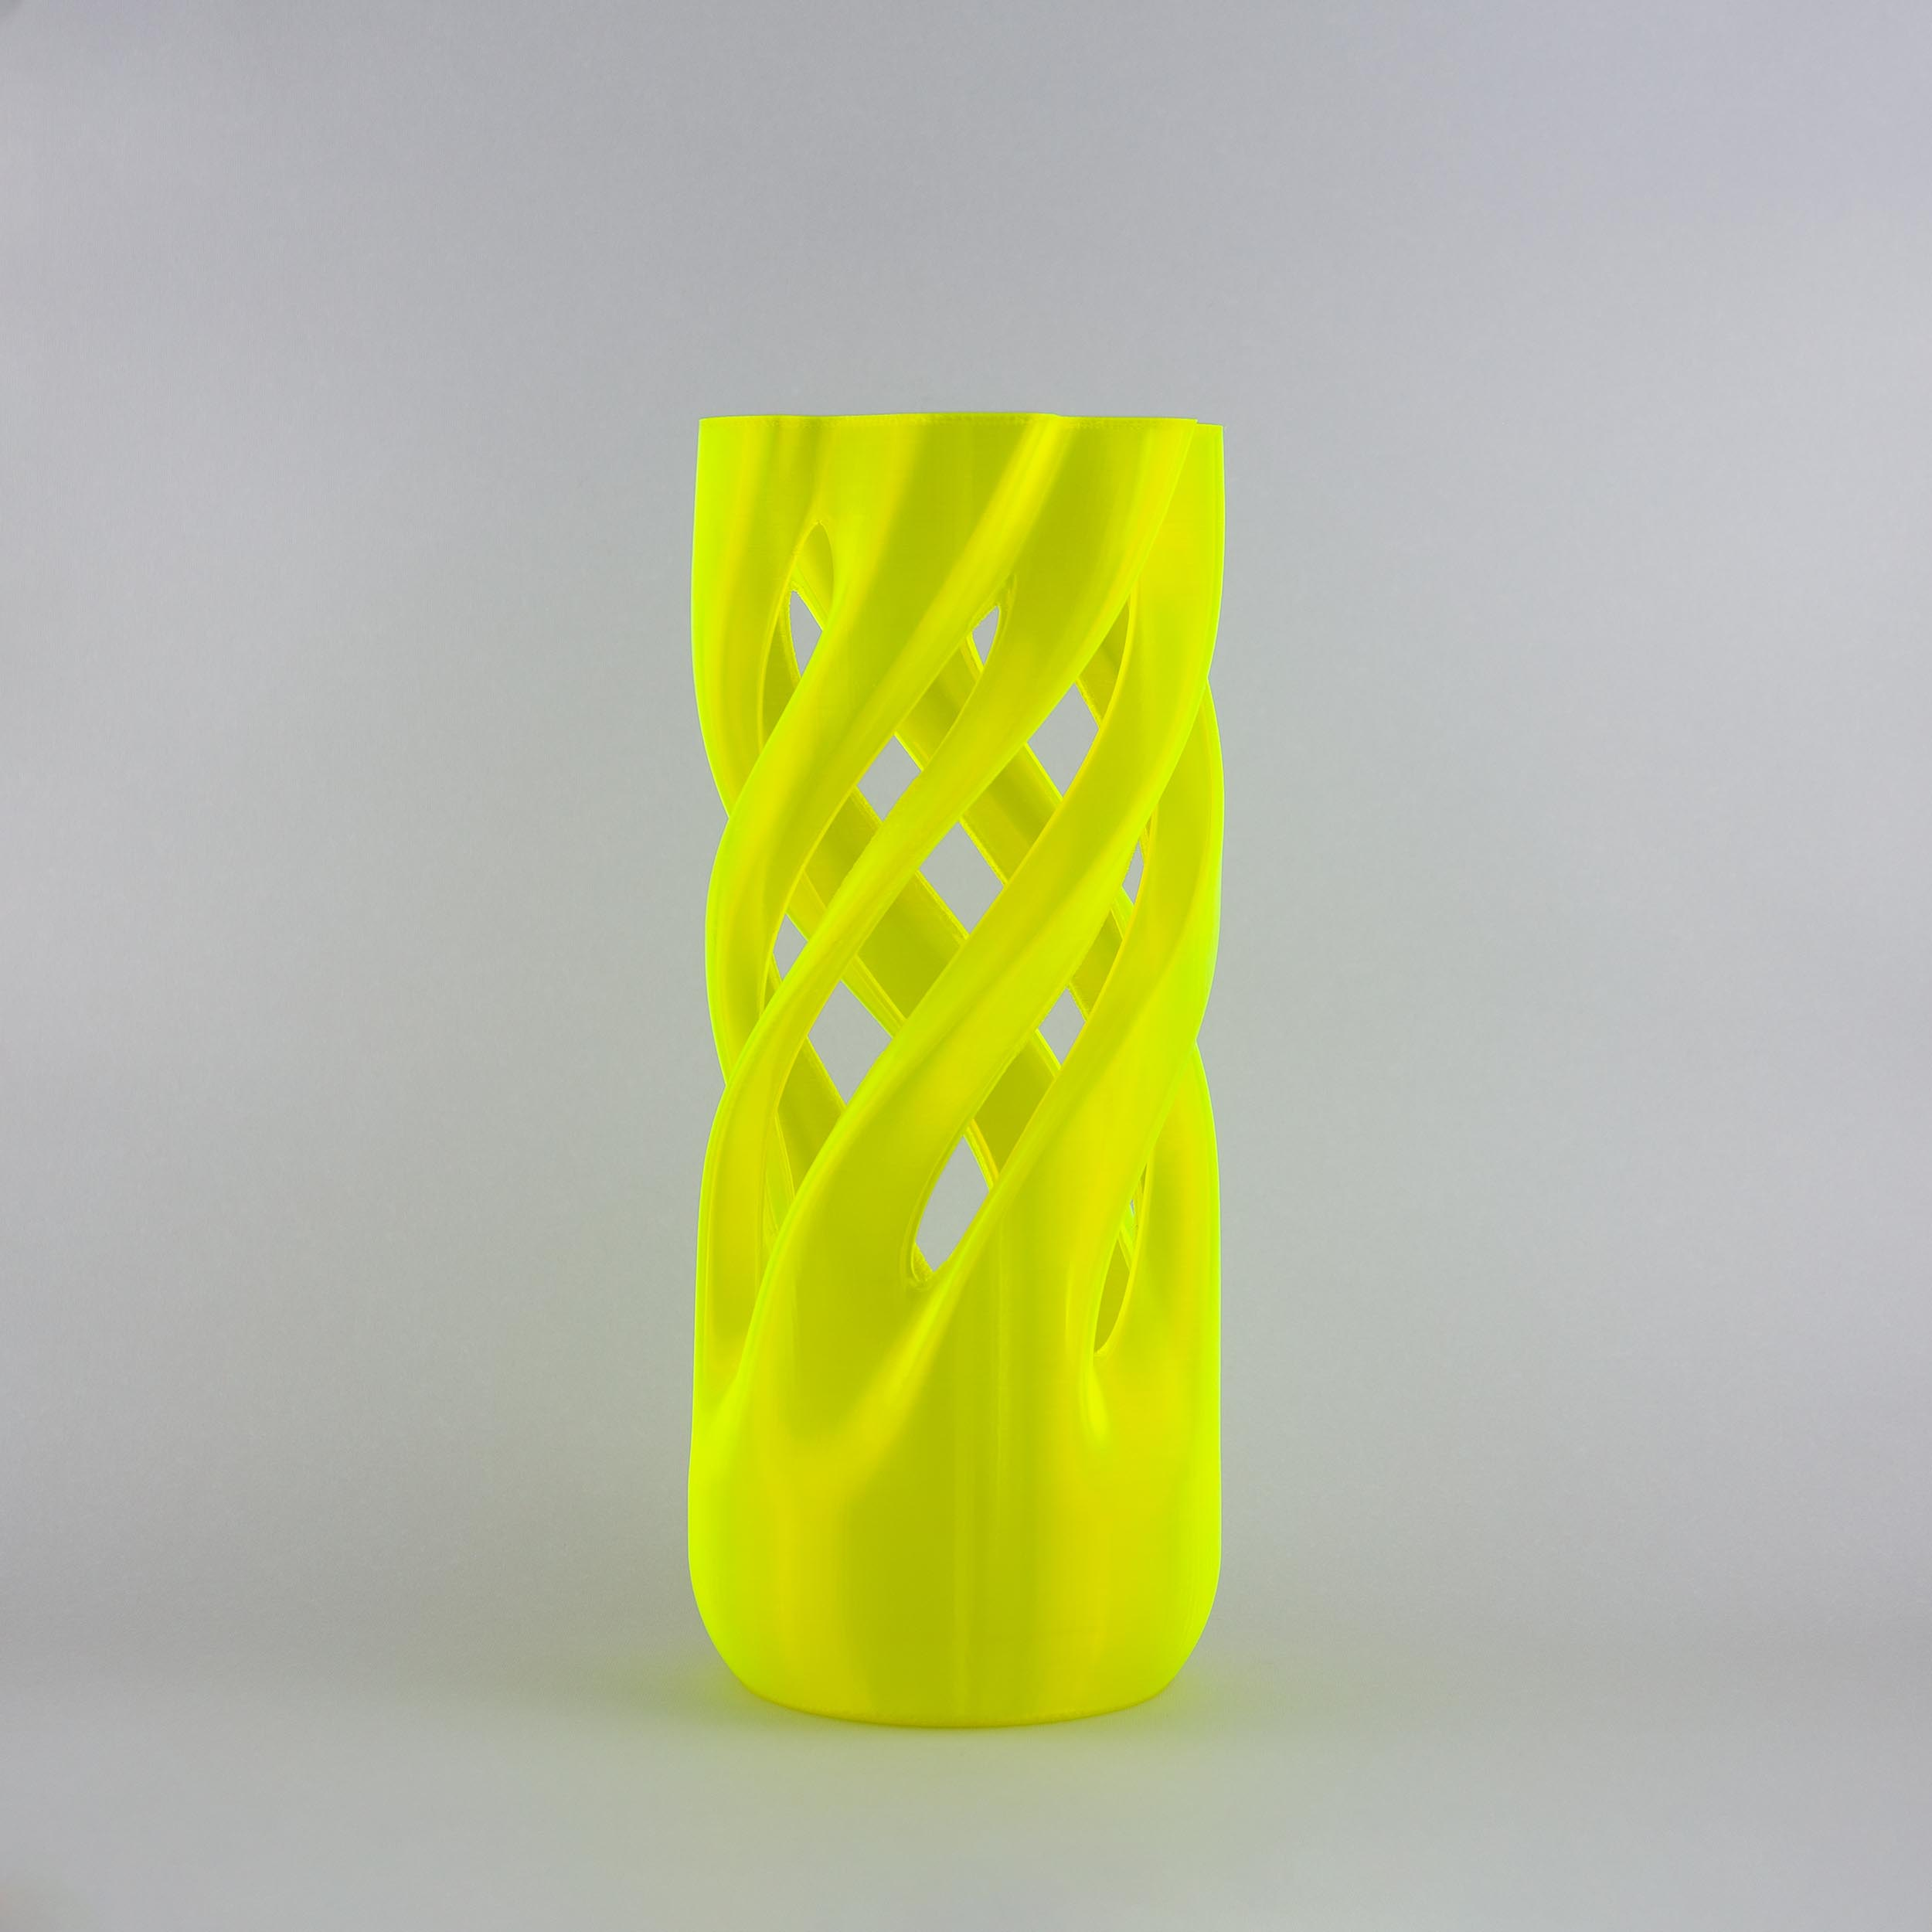 Abbracciame 3D printed vase in yello fluo limited edition